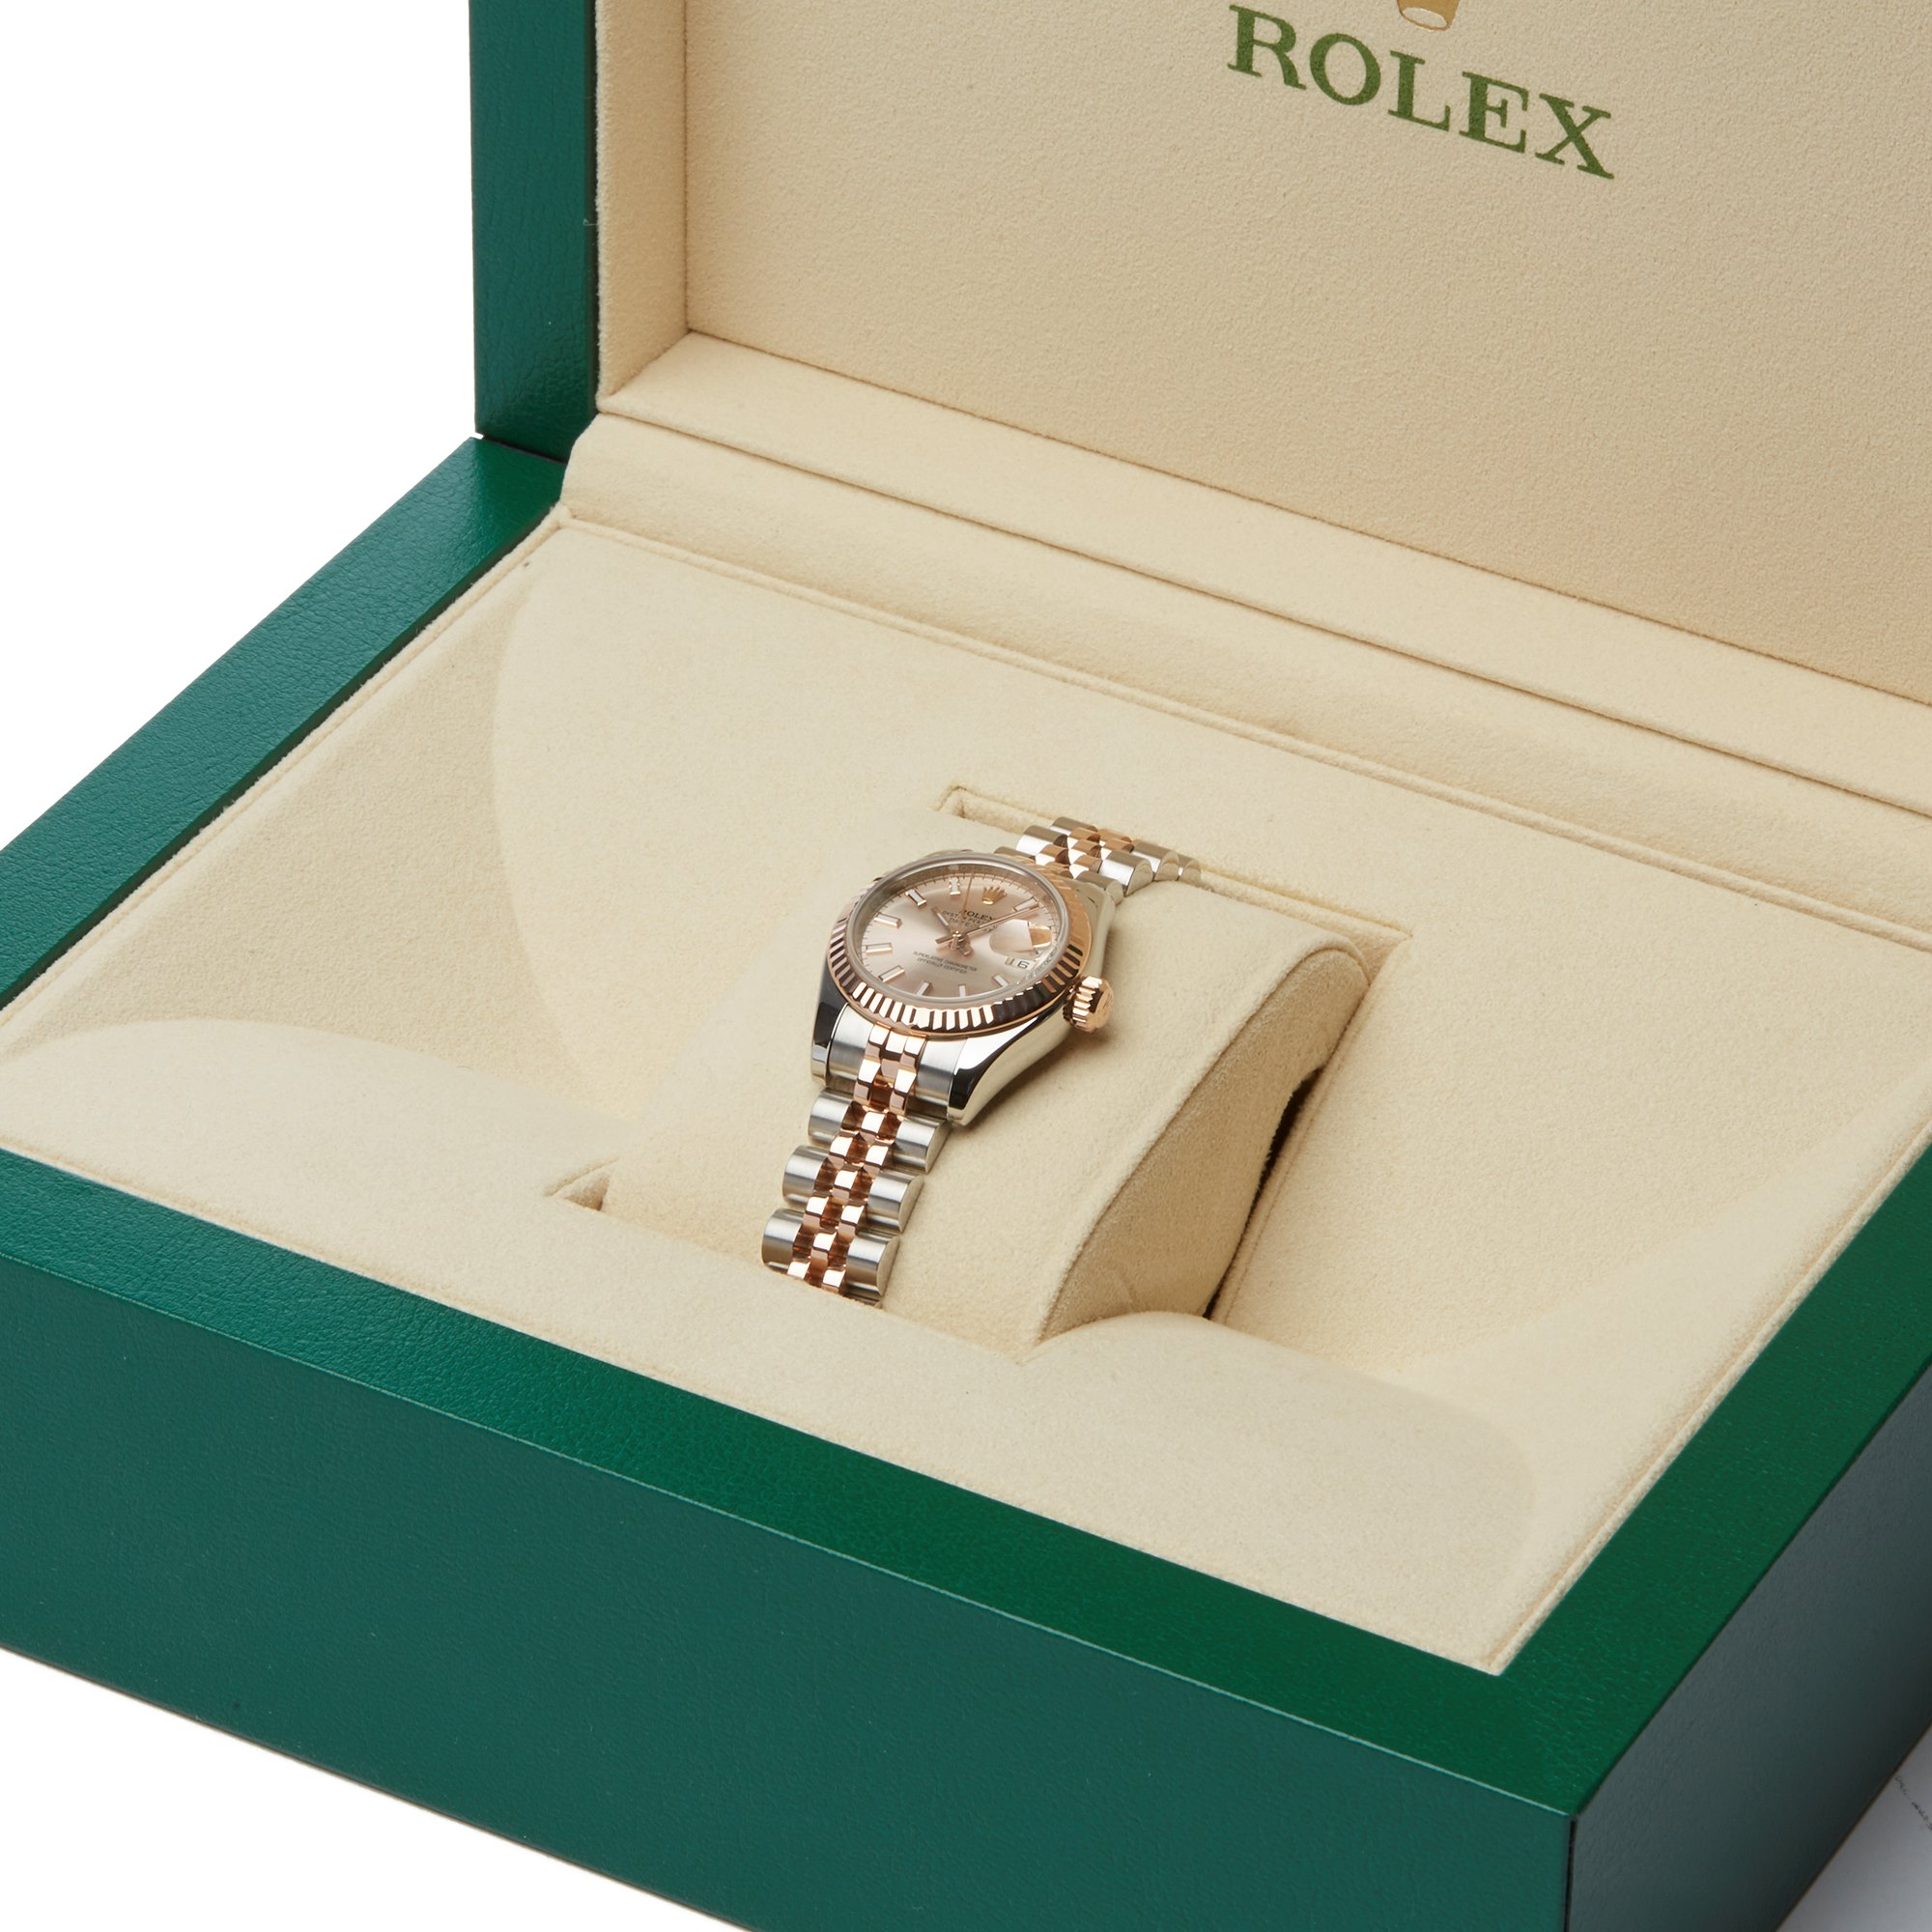 Rolex Datejust 26 179171 Ladies Rose Gold & Stainless Steel Watch - Image 3 of 10